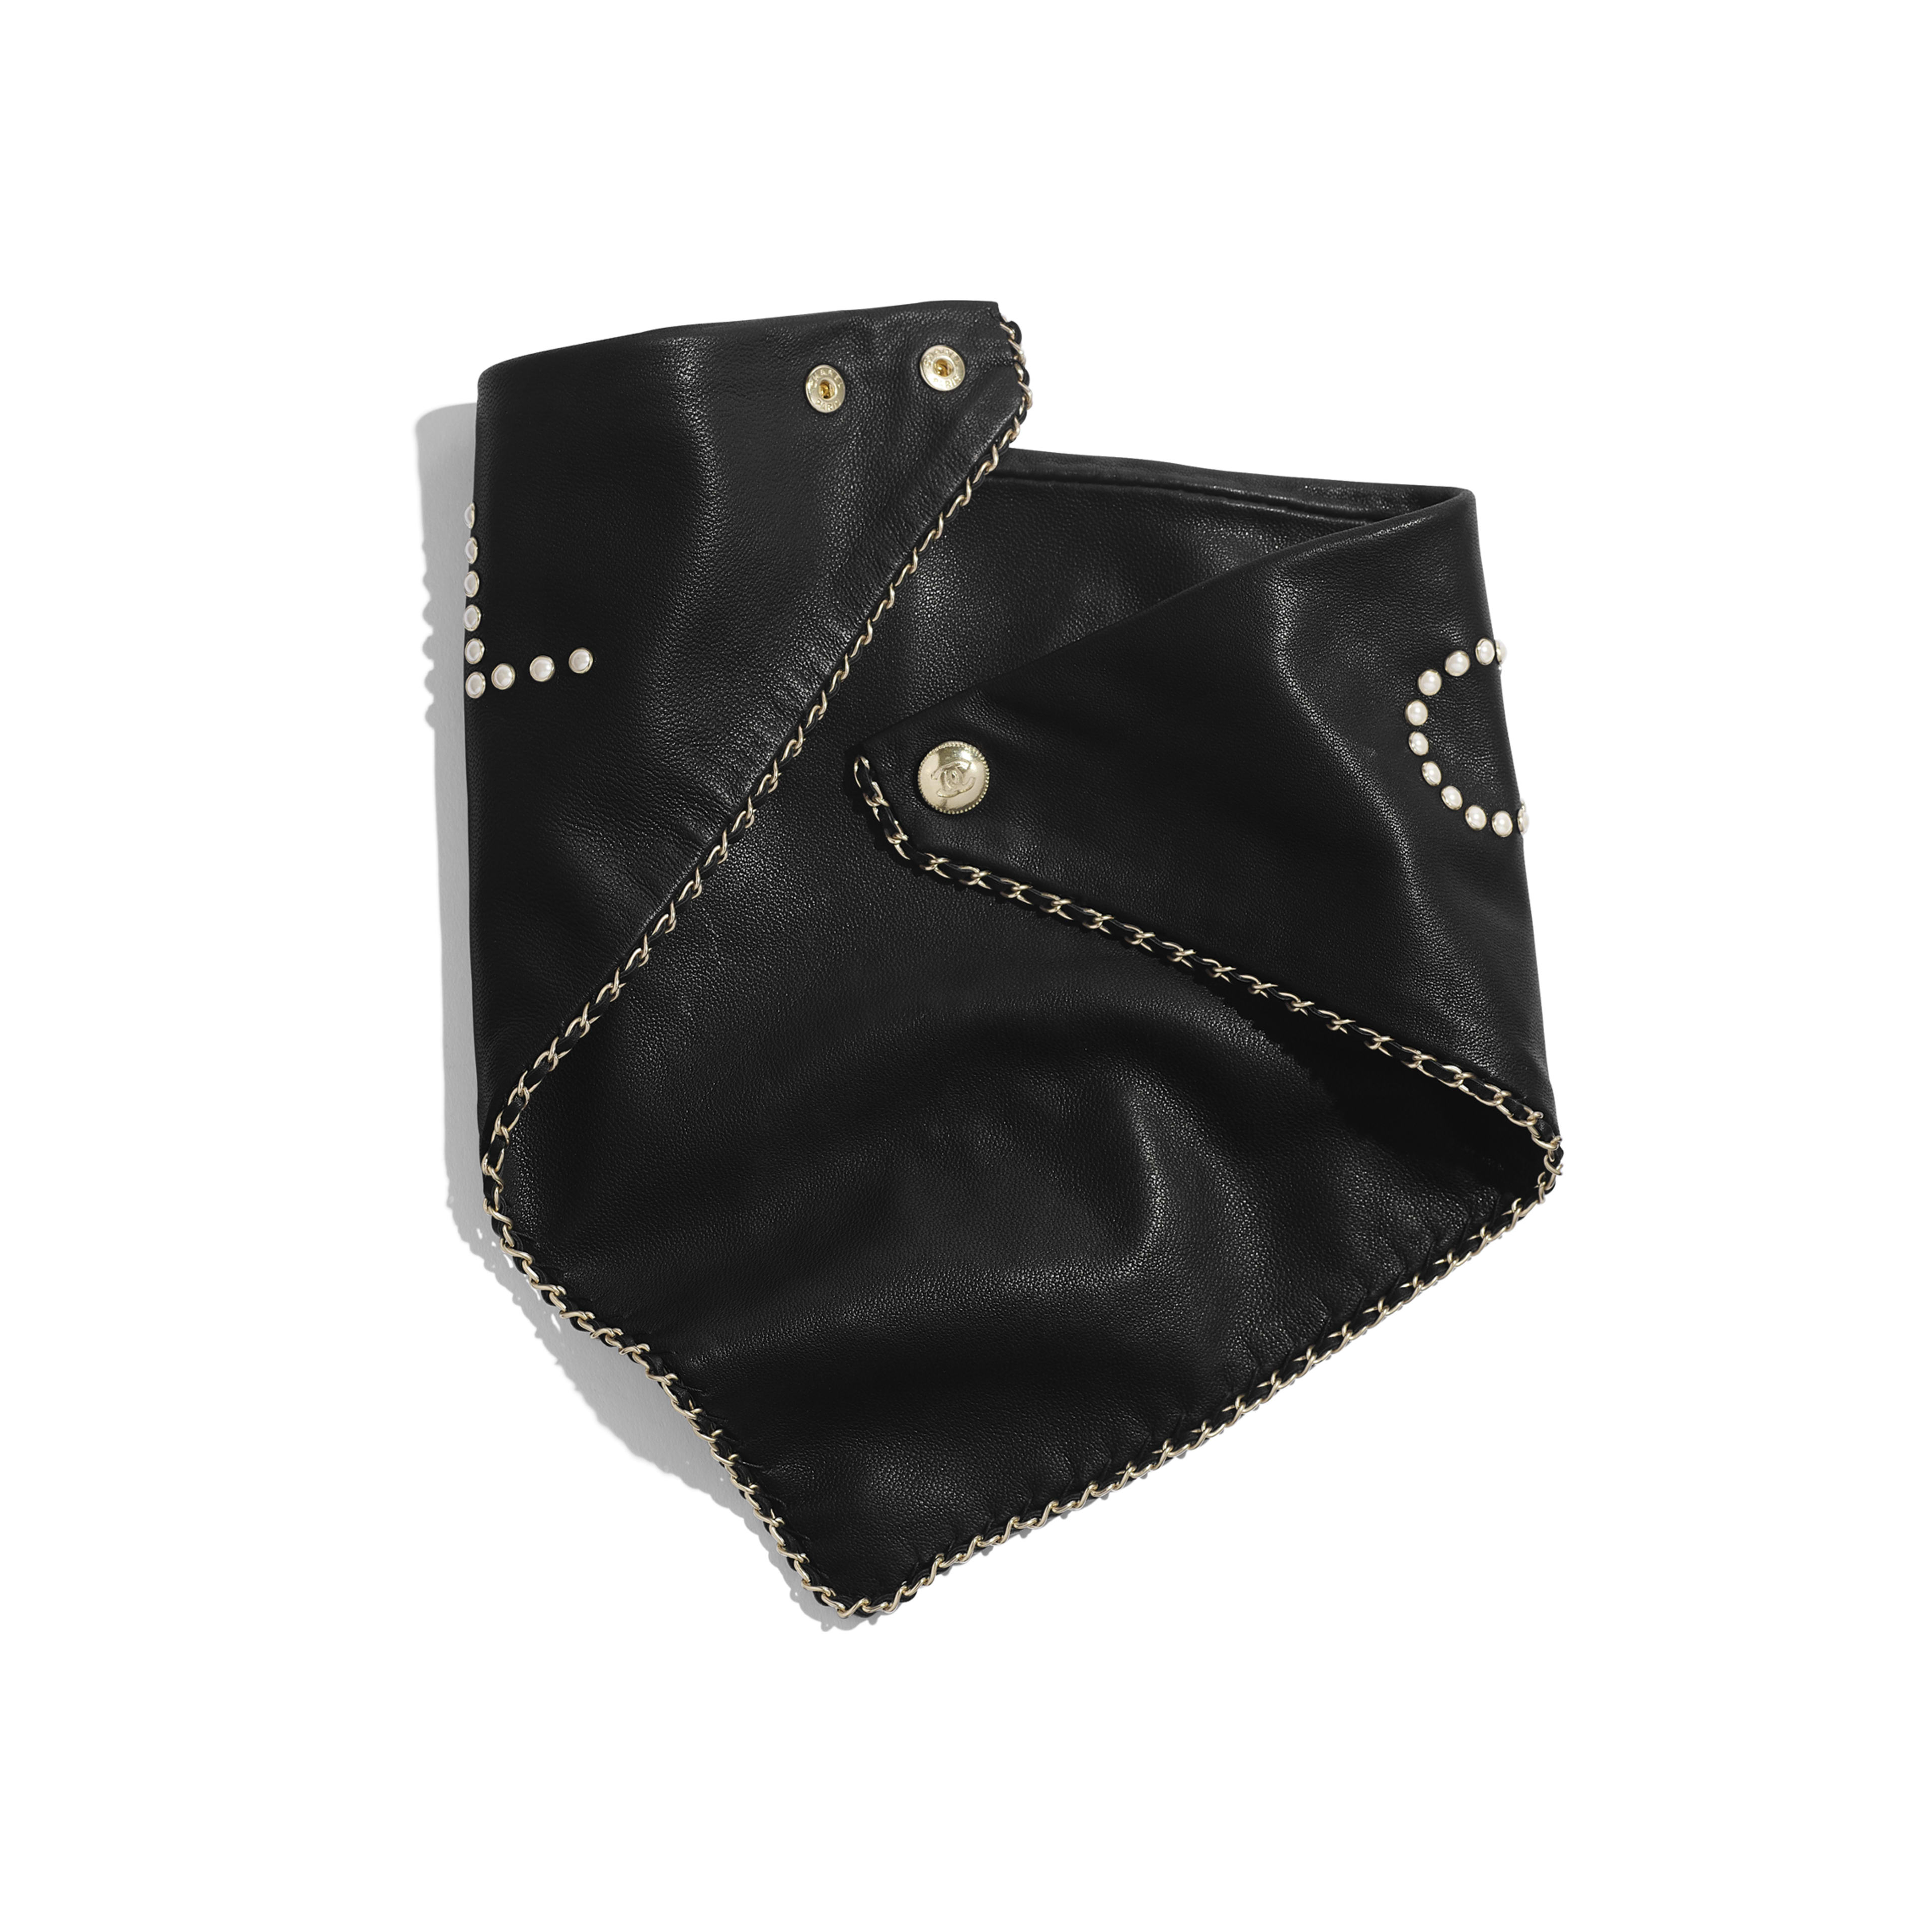 Bandana - Black & Pearly White - Glass Pearls & Gold-Tone Metal - Alternative view - see full sized version